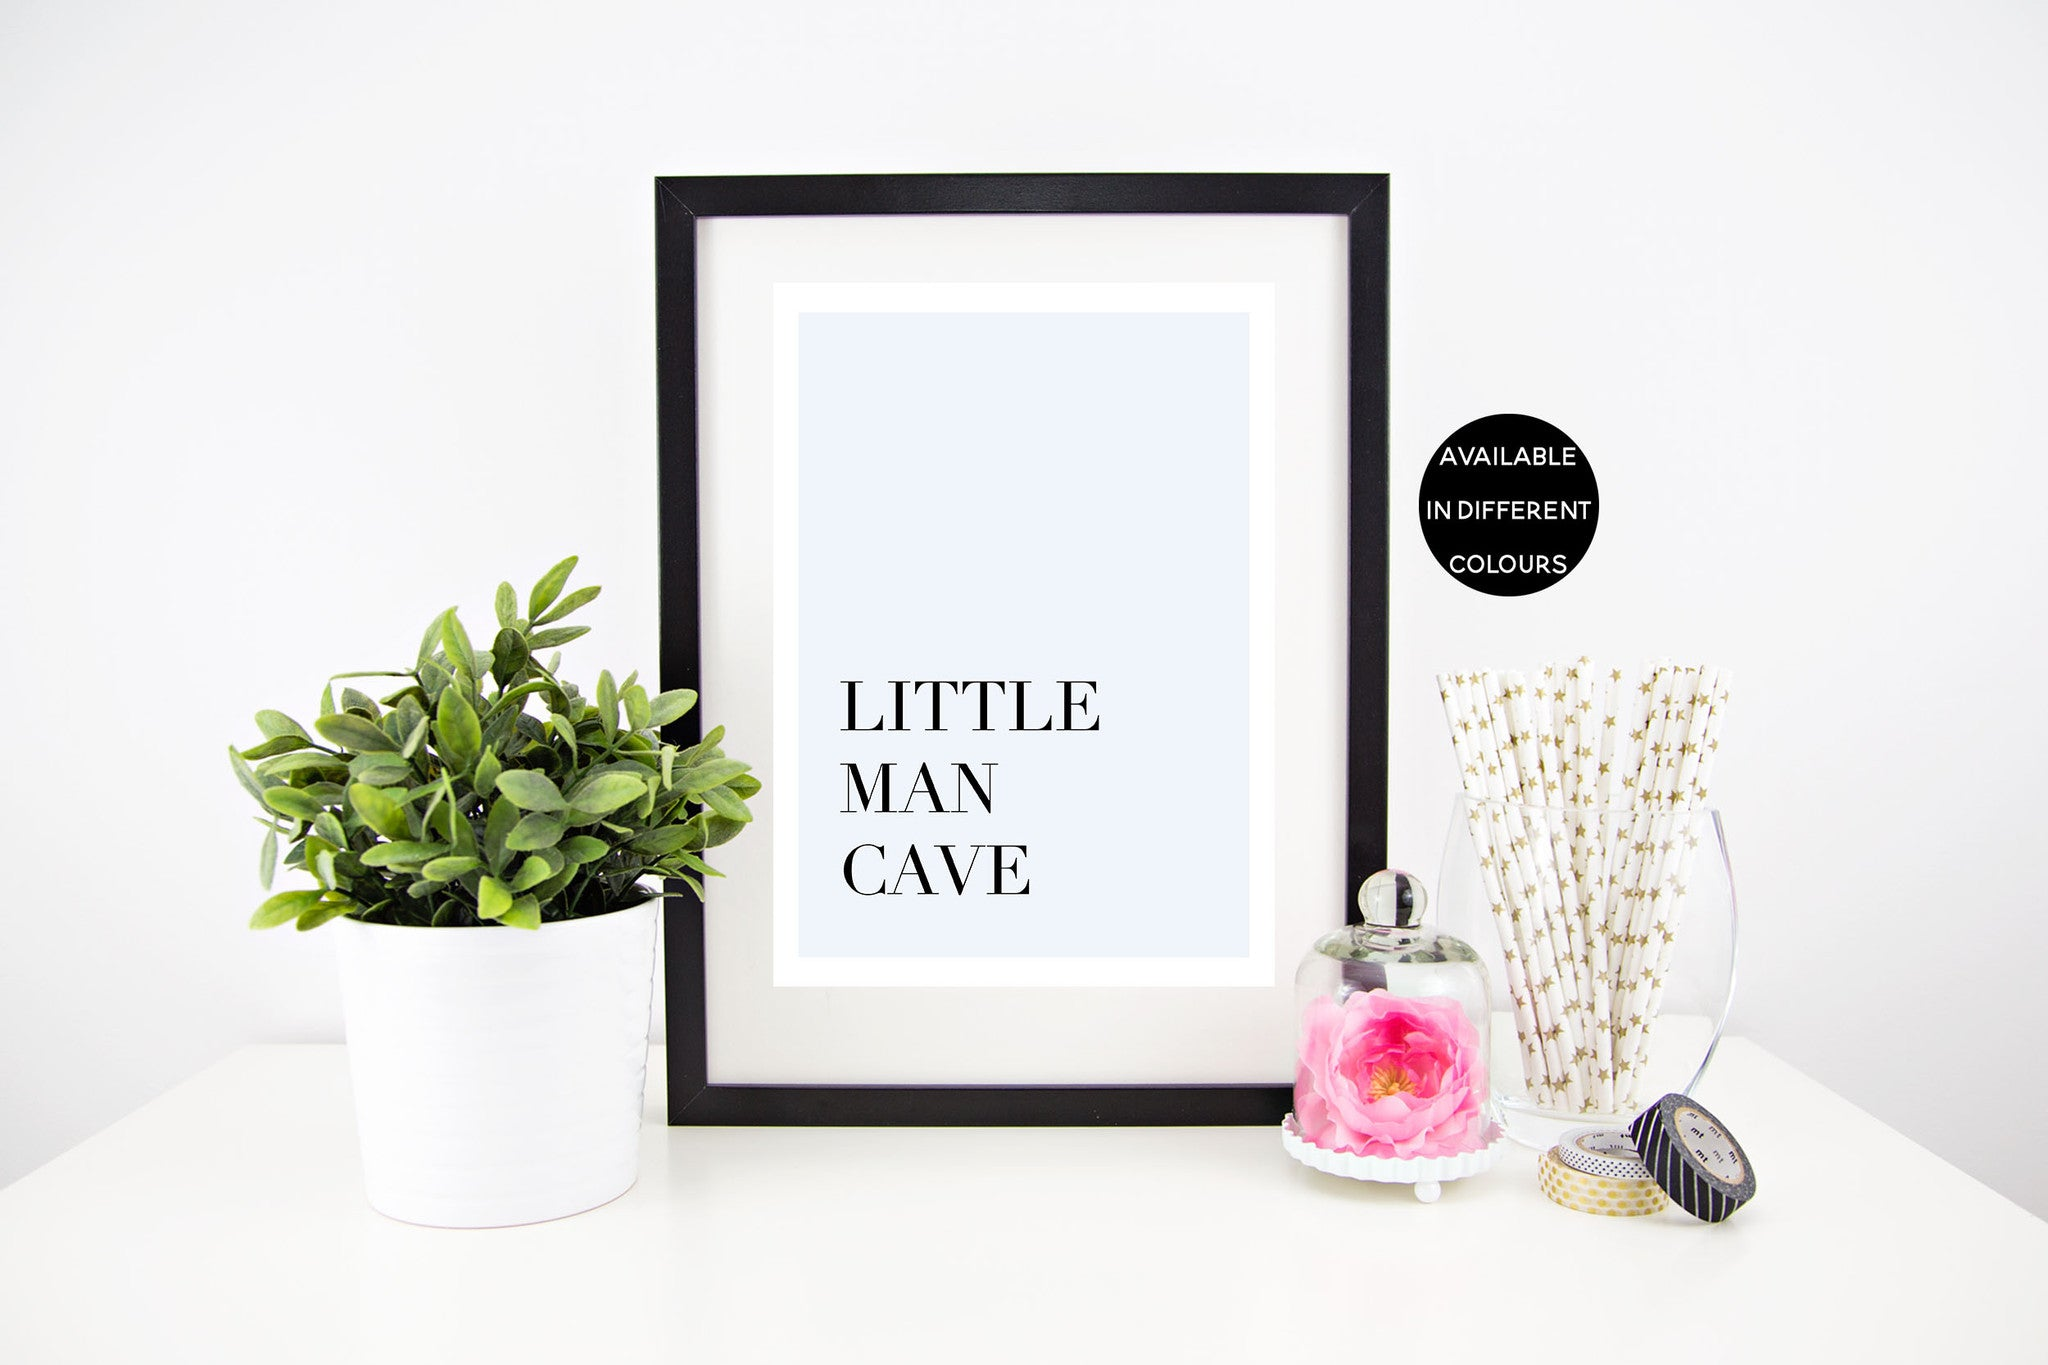 Little Man Cave - Different Colours Available - Stylish Baby Milestone Cards + Baby Announcement Baby Wraps + swaddles. Global Shipping lovepaperink.com.au